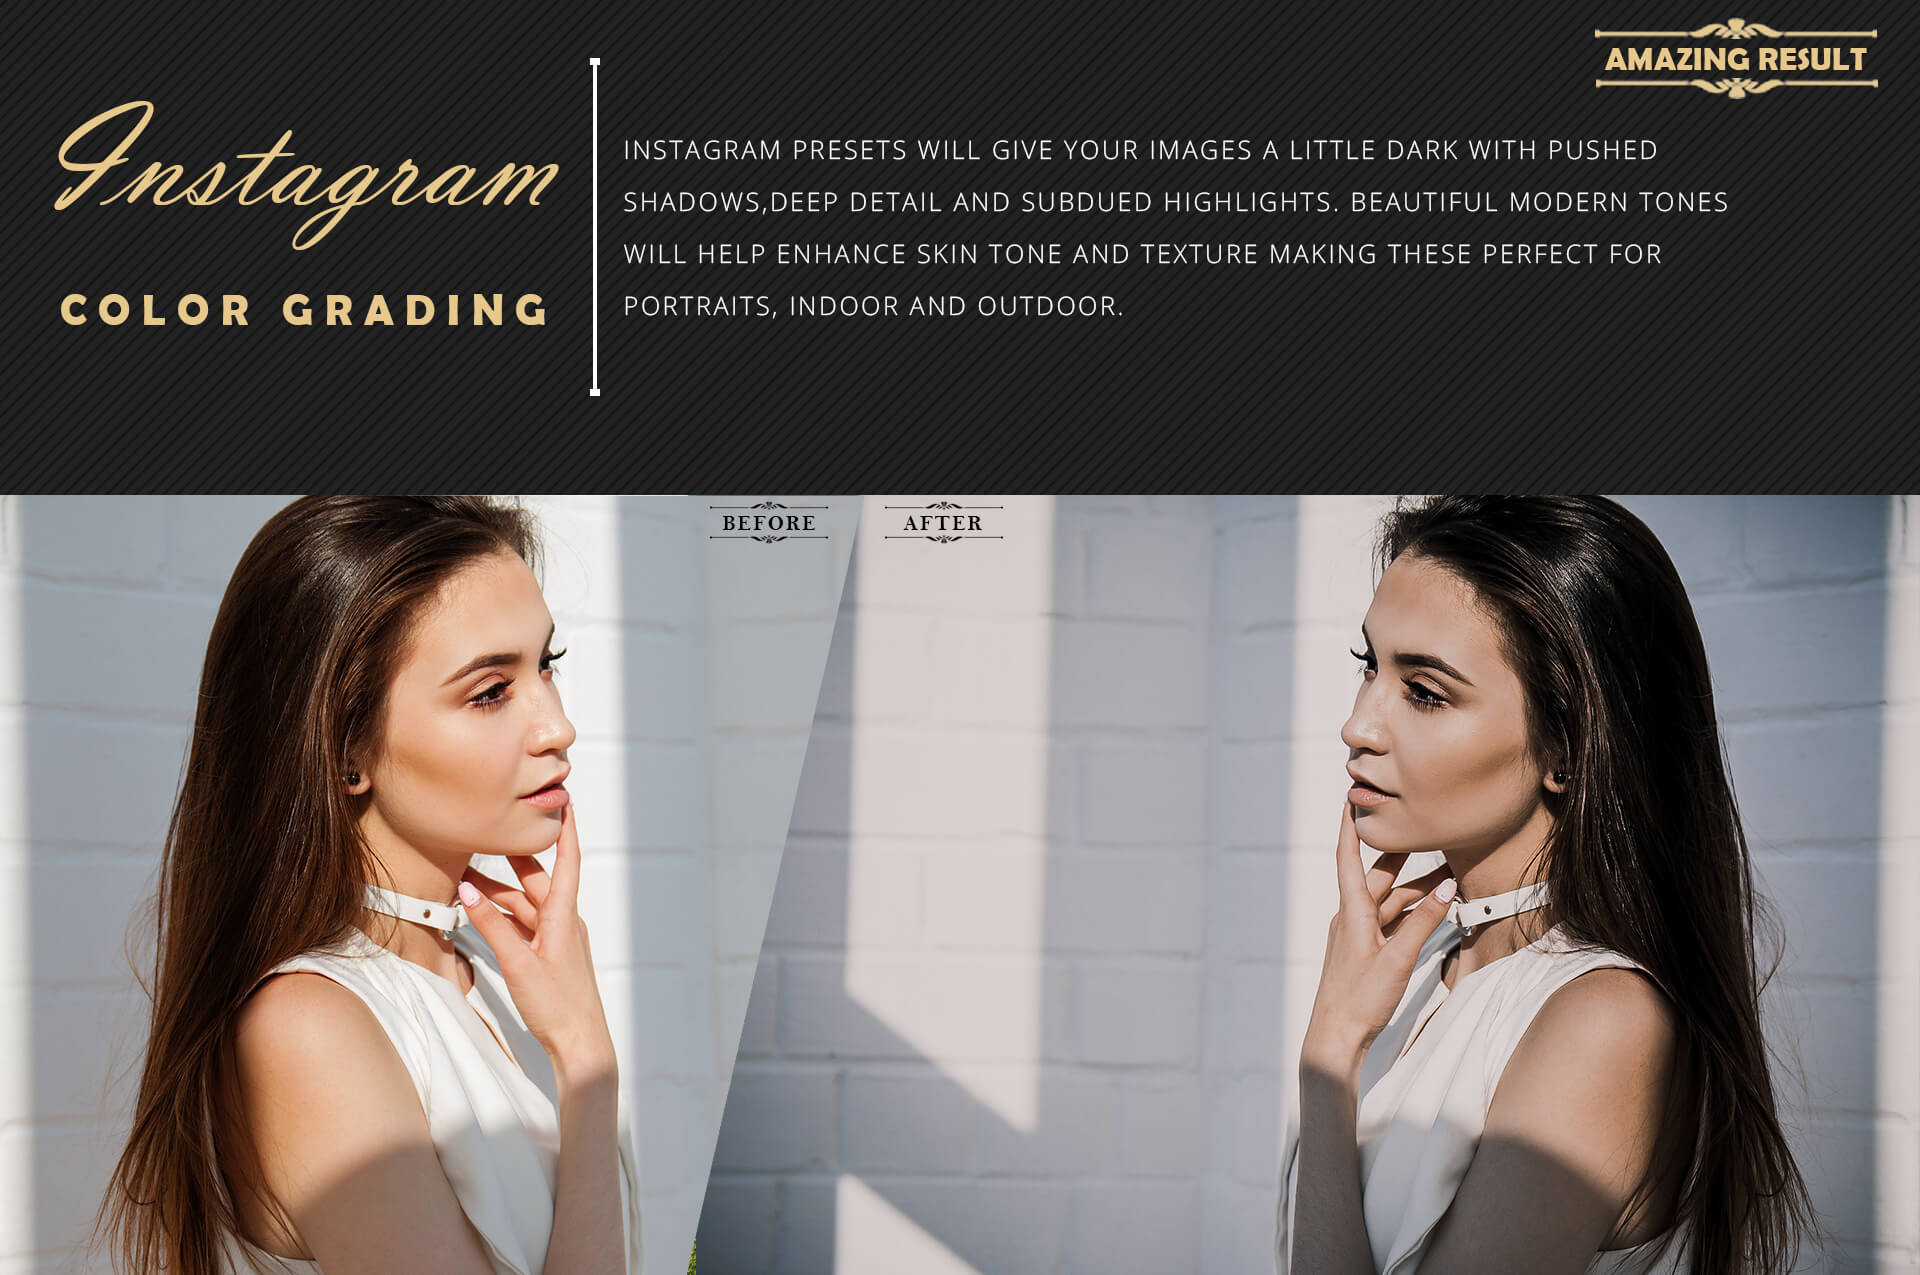 Instagram color grading lightroom presets theme example image 4